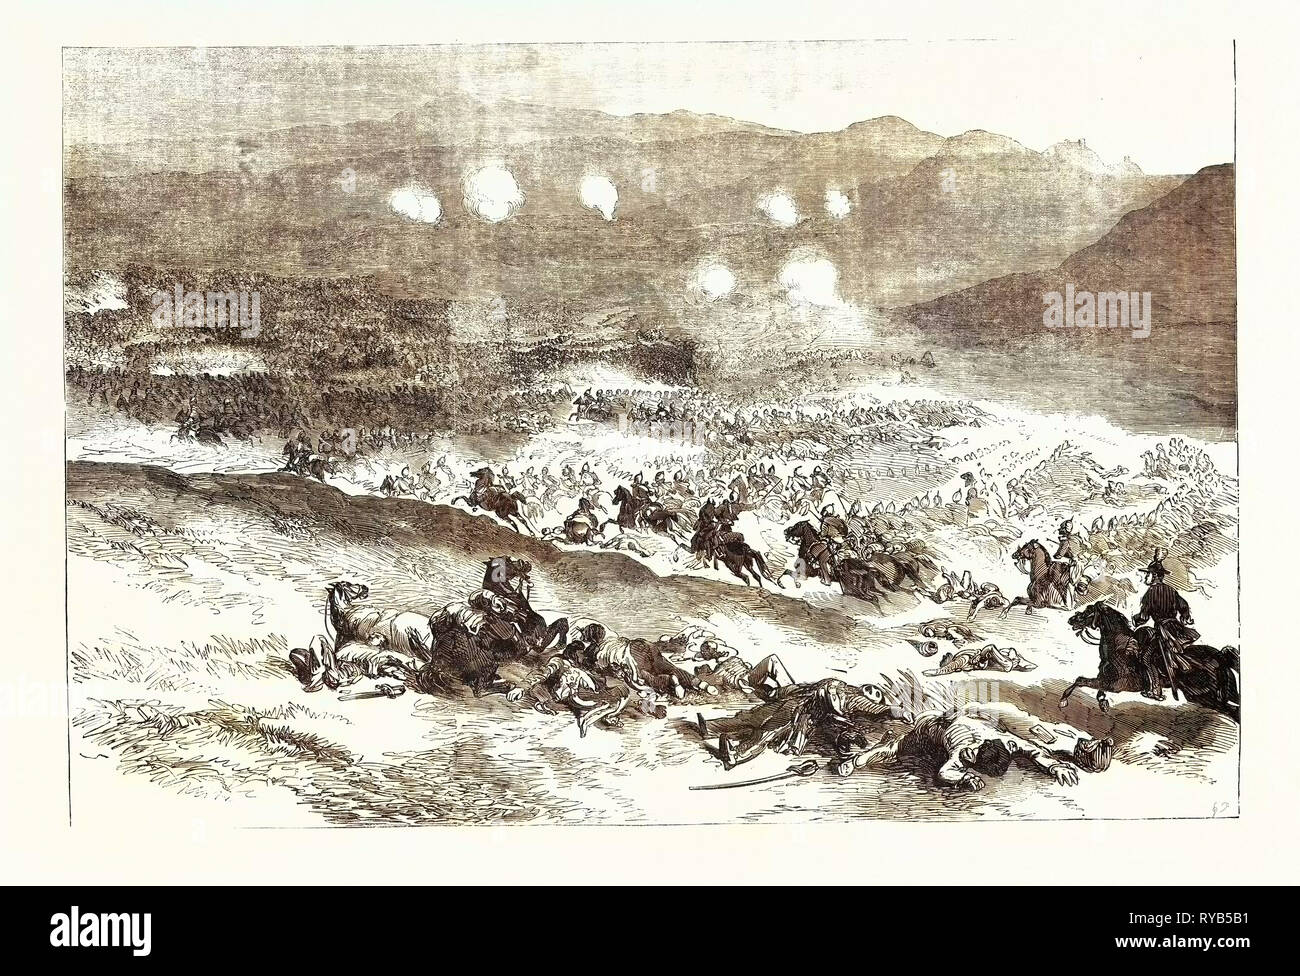 The Crimean War: The Action at Balaclava October 25. First Charge of Heavy Cavalry 1854 - Stock Image